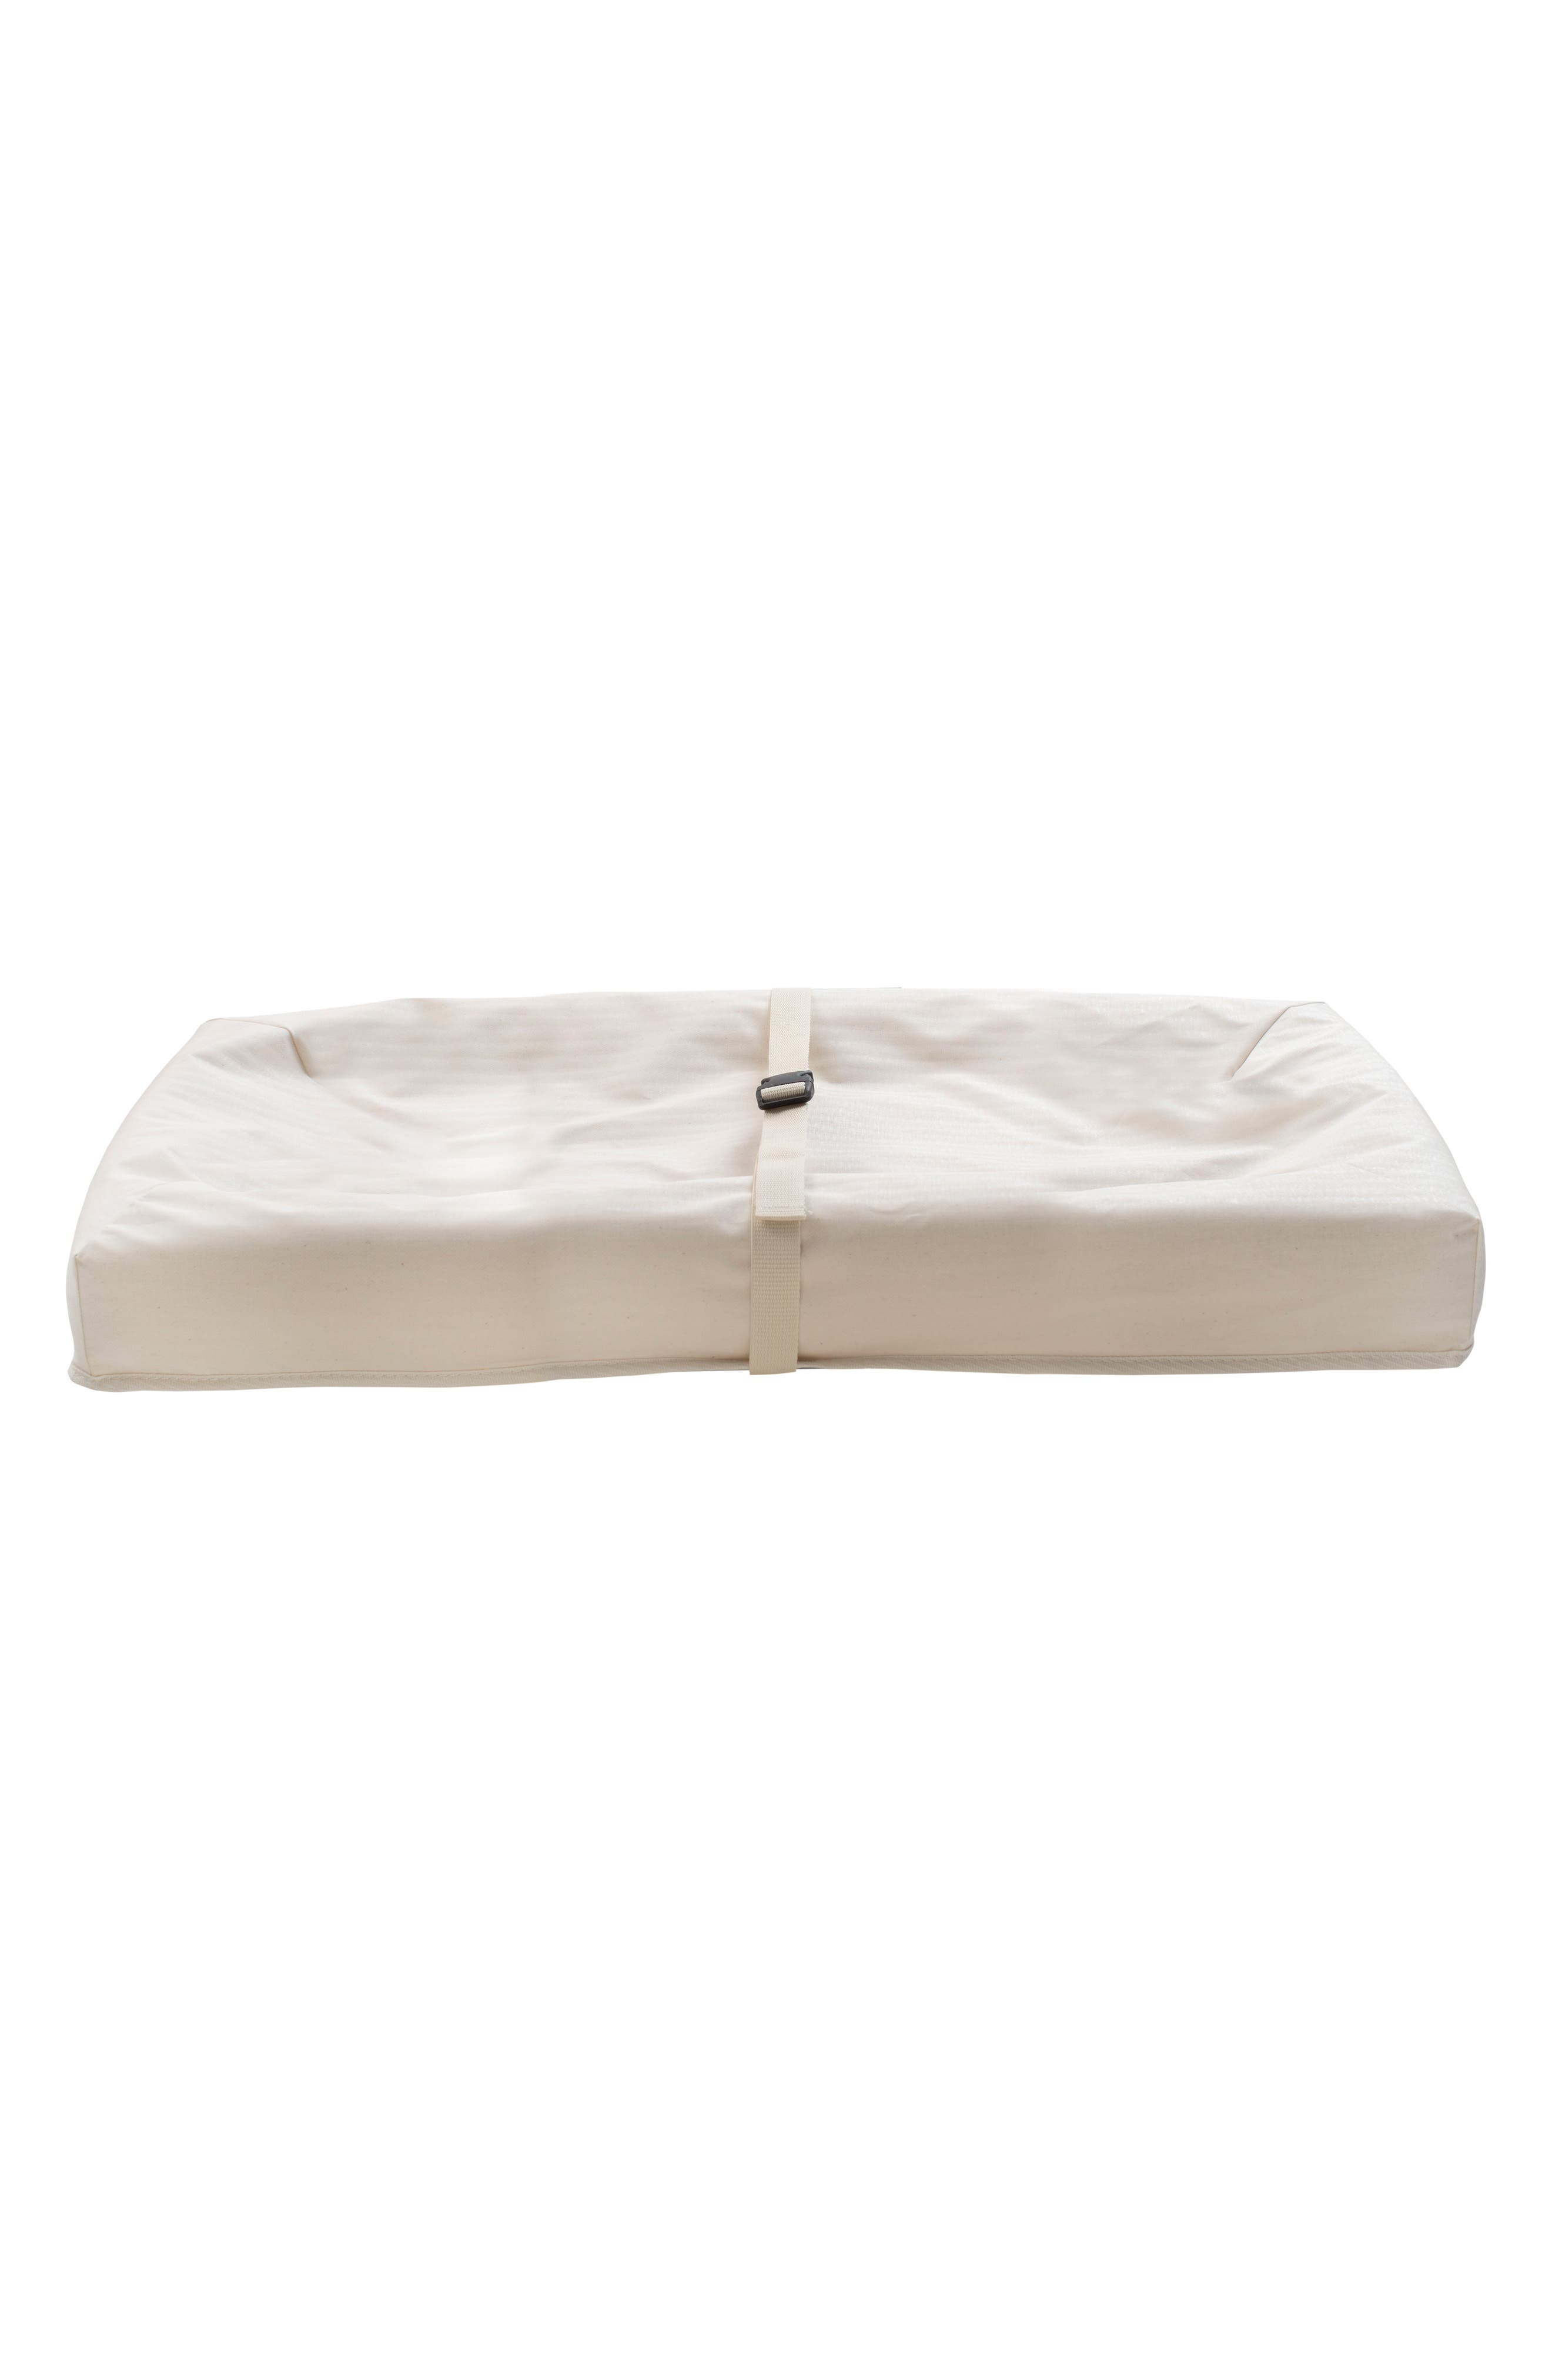 x Rosie Pope Pure & Secure Four-Sided Changing Pad,                             Main thumbnail 1, color,                             250